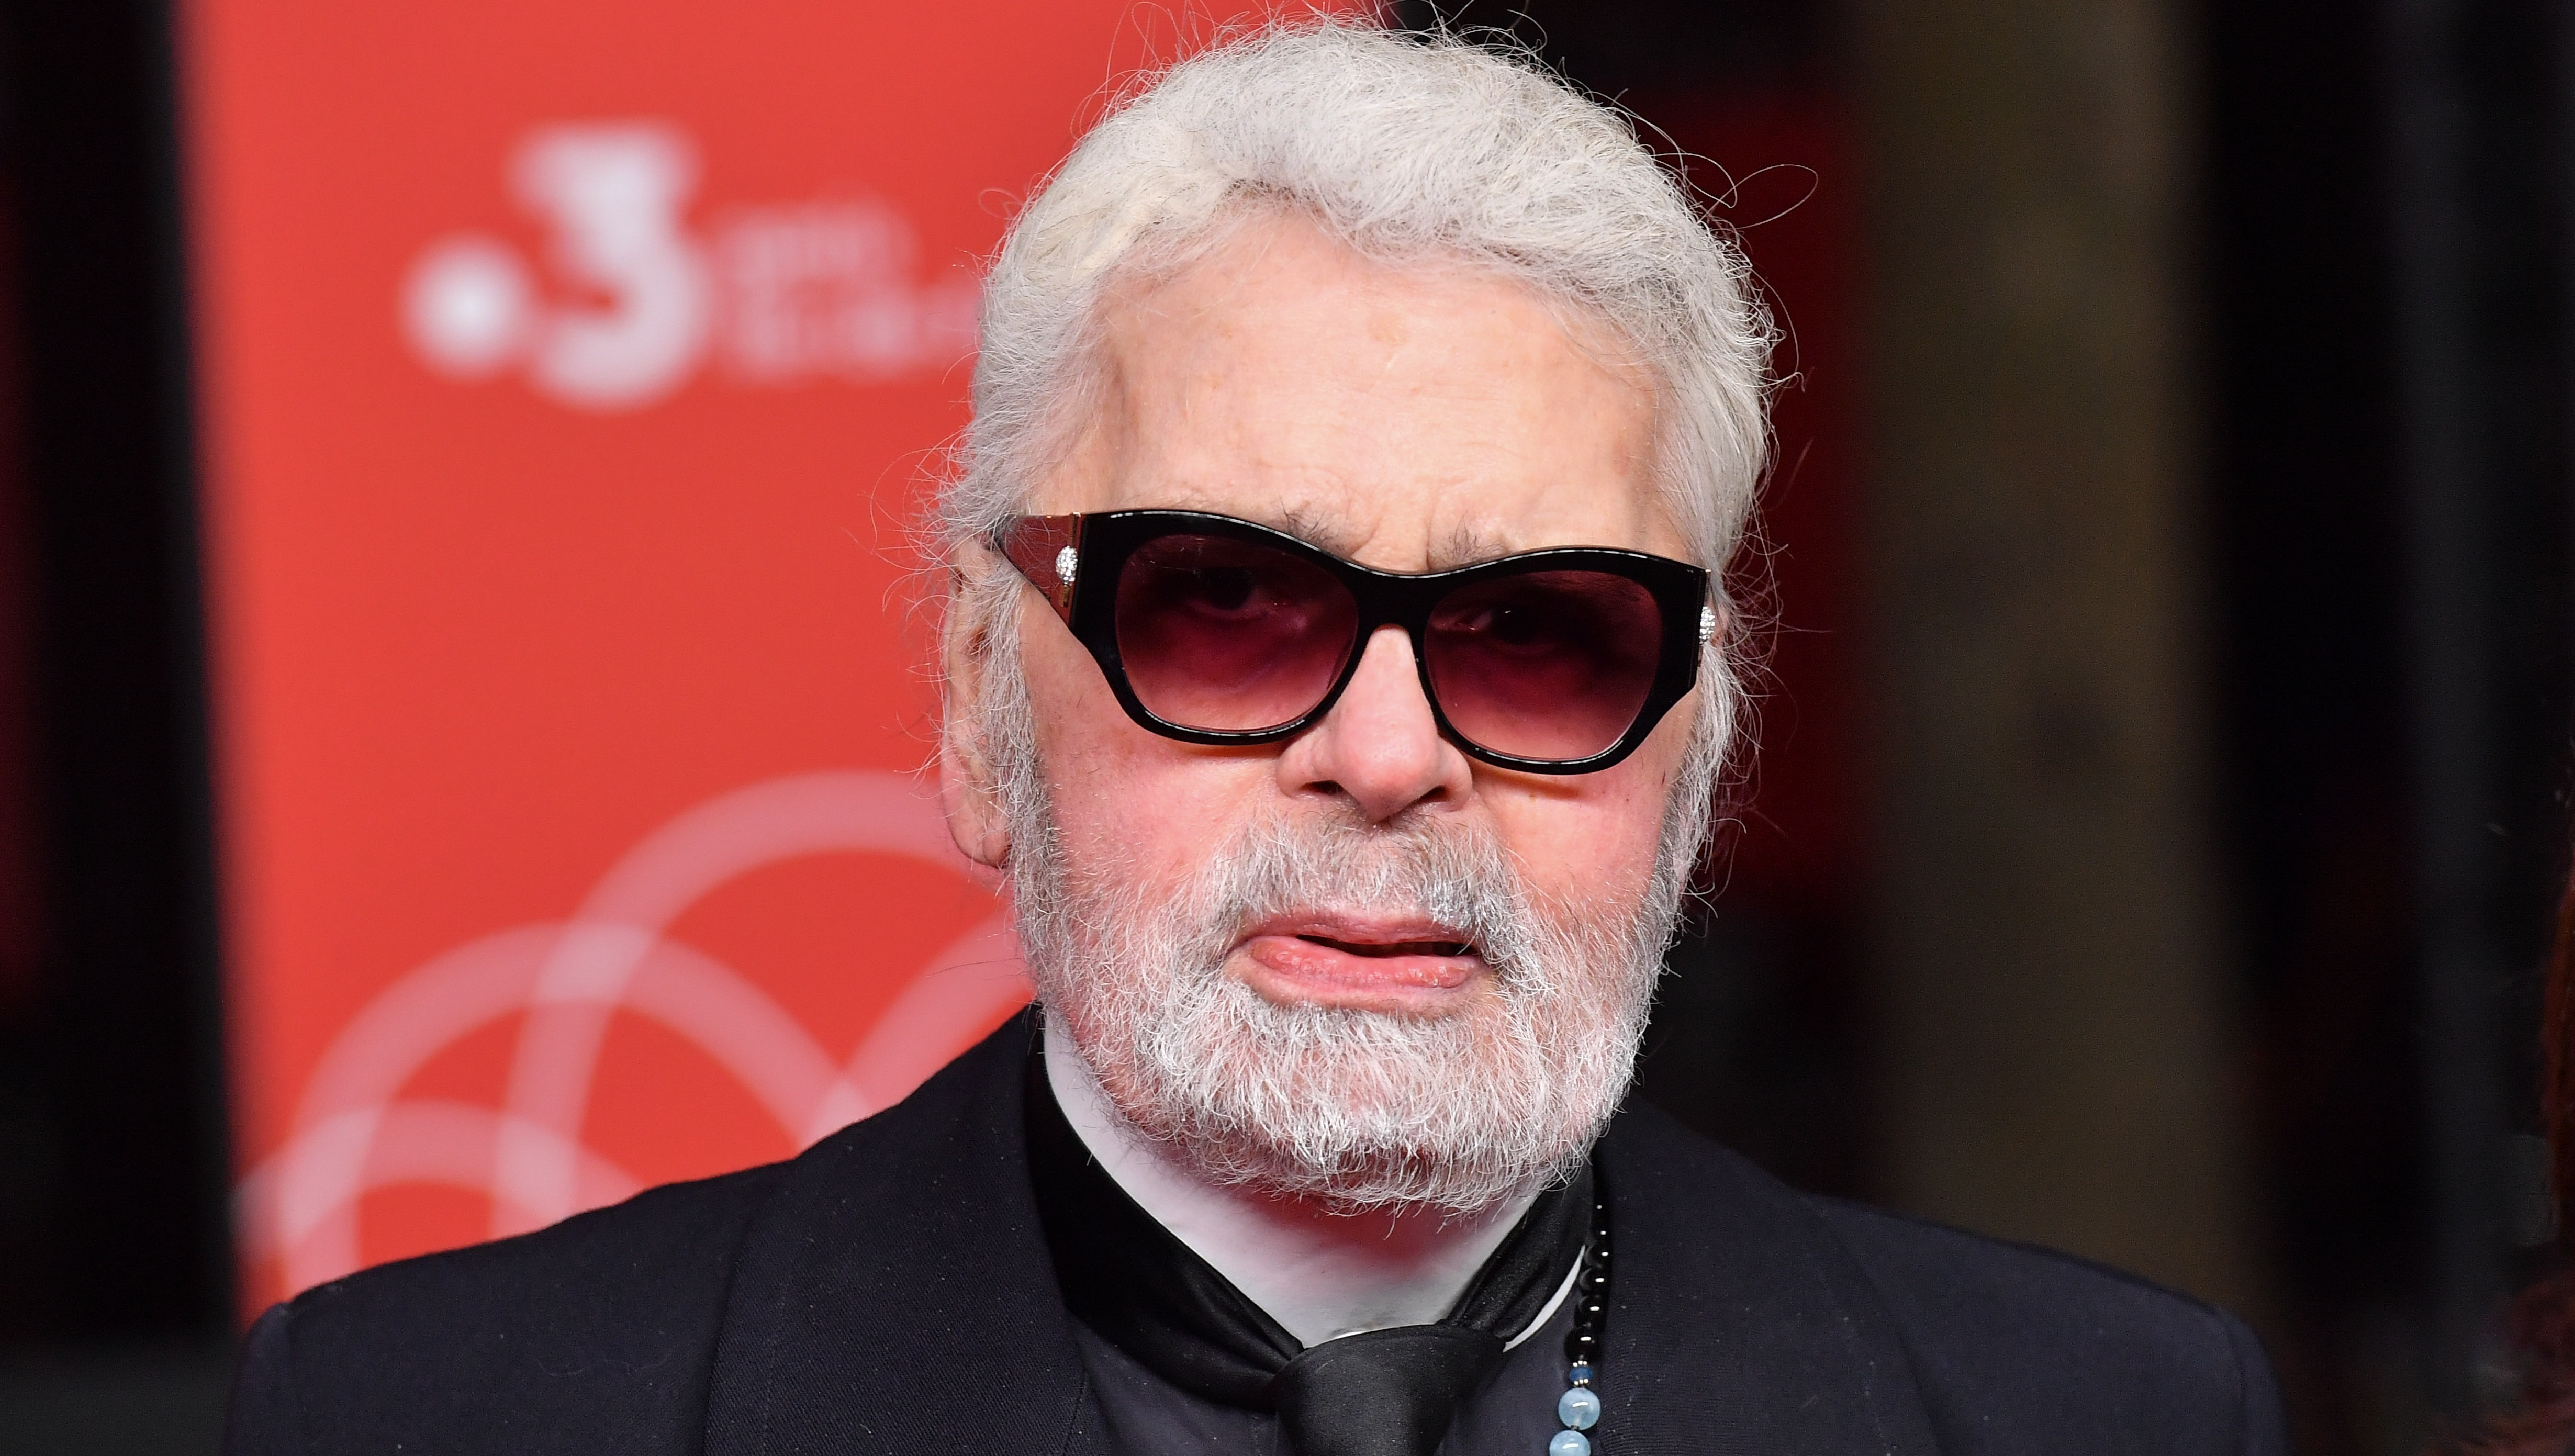 Karl Lagerfeld wearing black sunglasses and a black blazer